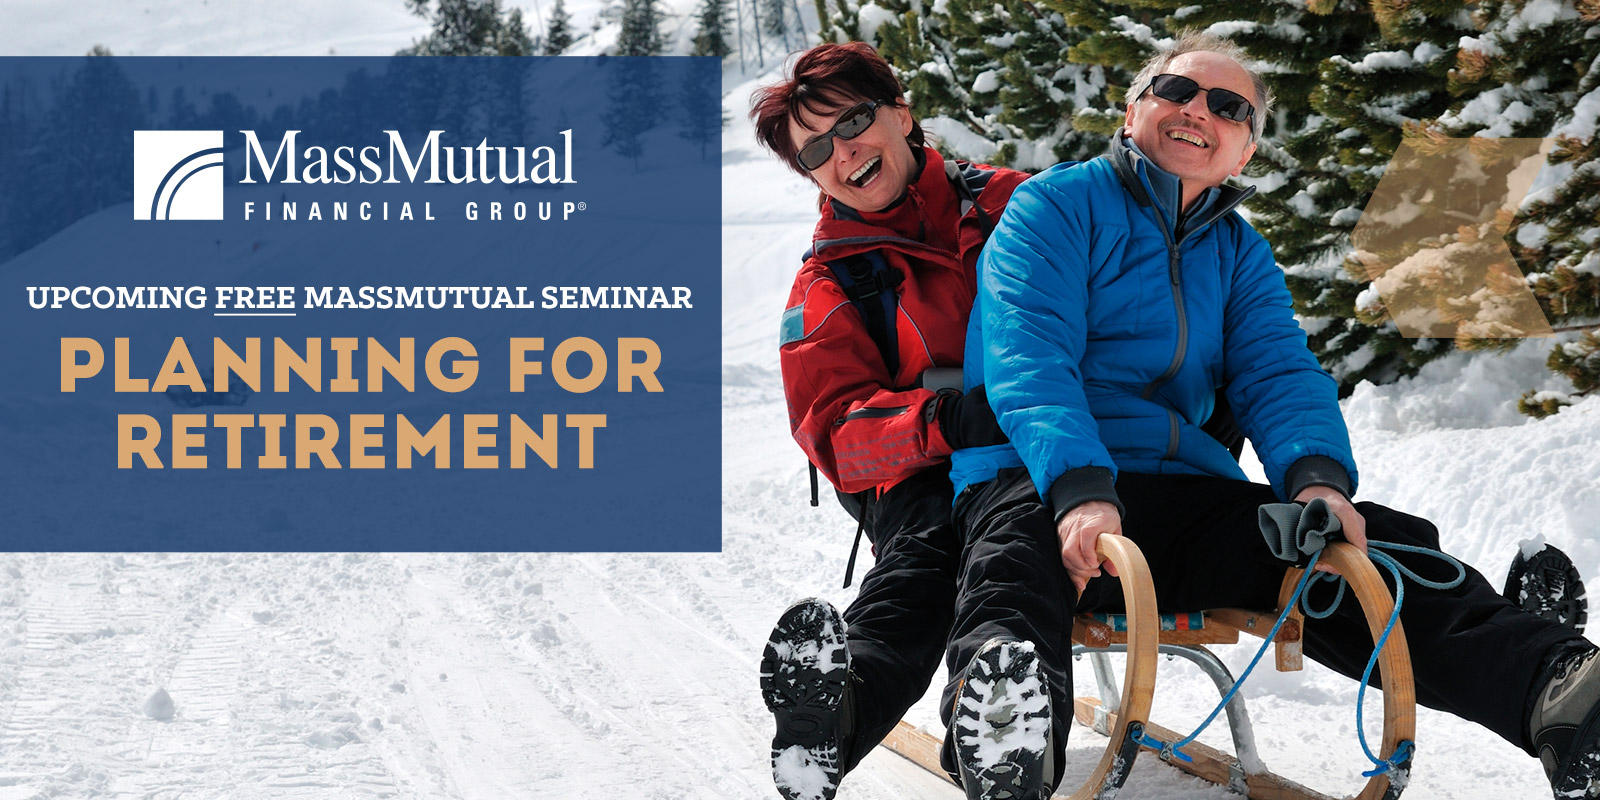 MassMutual Planning for Retirement Seminar - Aitkin